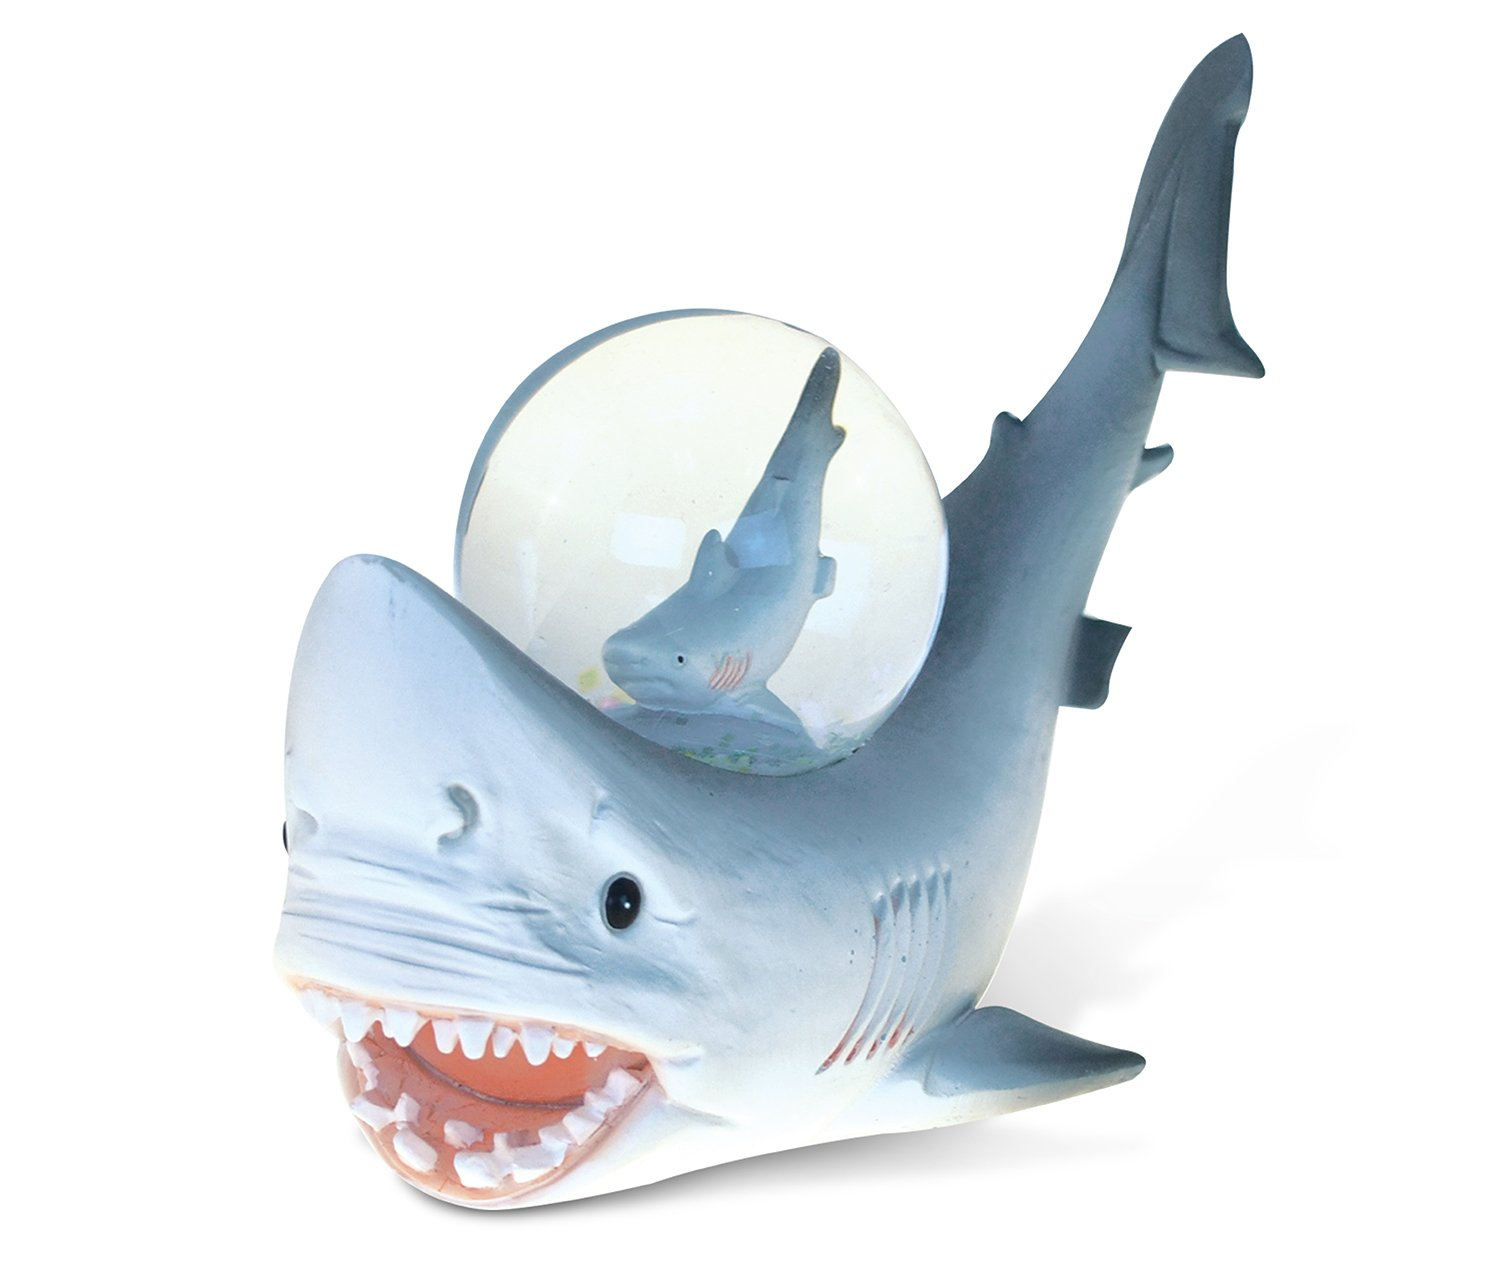 Puzzled Shark (45MM) Resin Stone Finish Snow Globe - Ocean Life Theme - Unique Elegant Gift and Souvenir - Item #9471